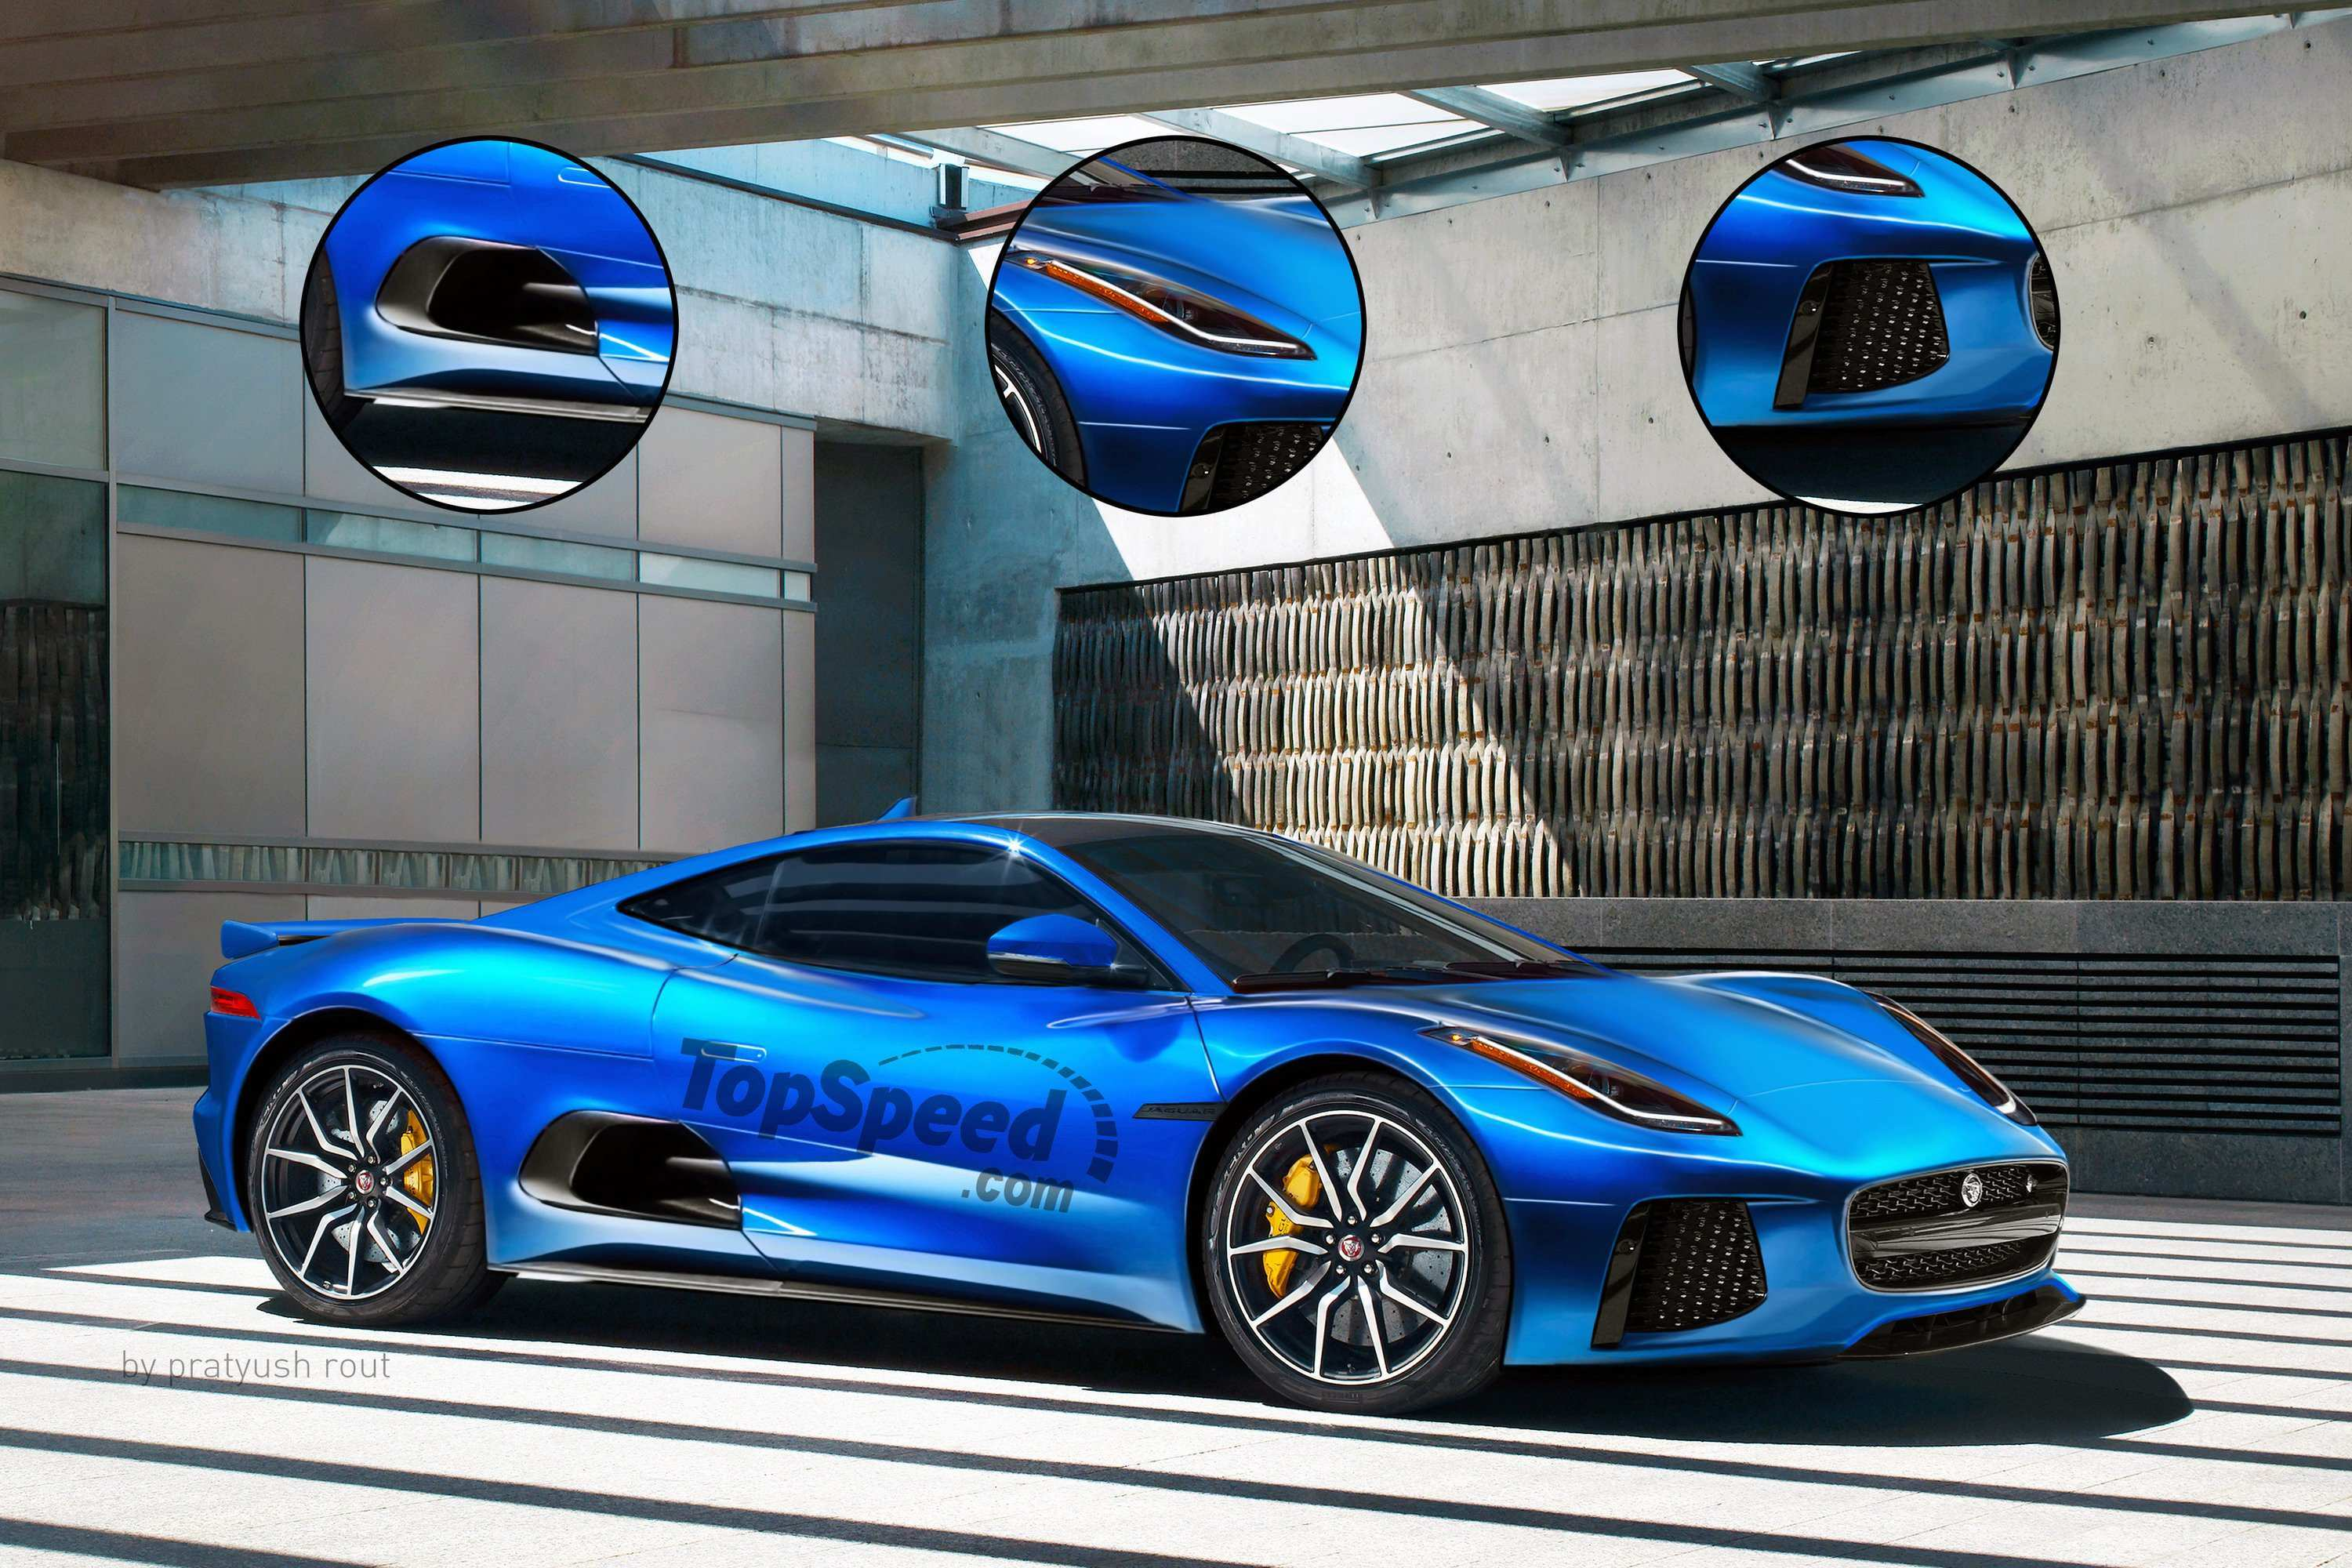 45 All New Jaguar F Type 2020 Release Date New Review by Jaguar F Type 2020 Release Date